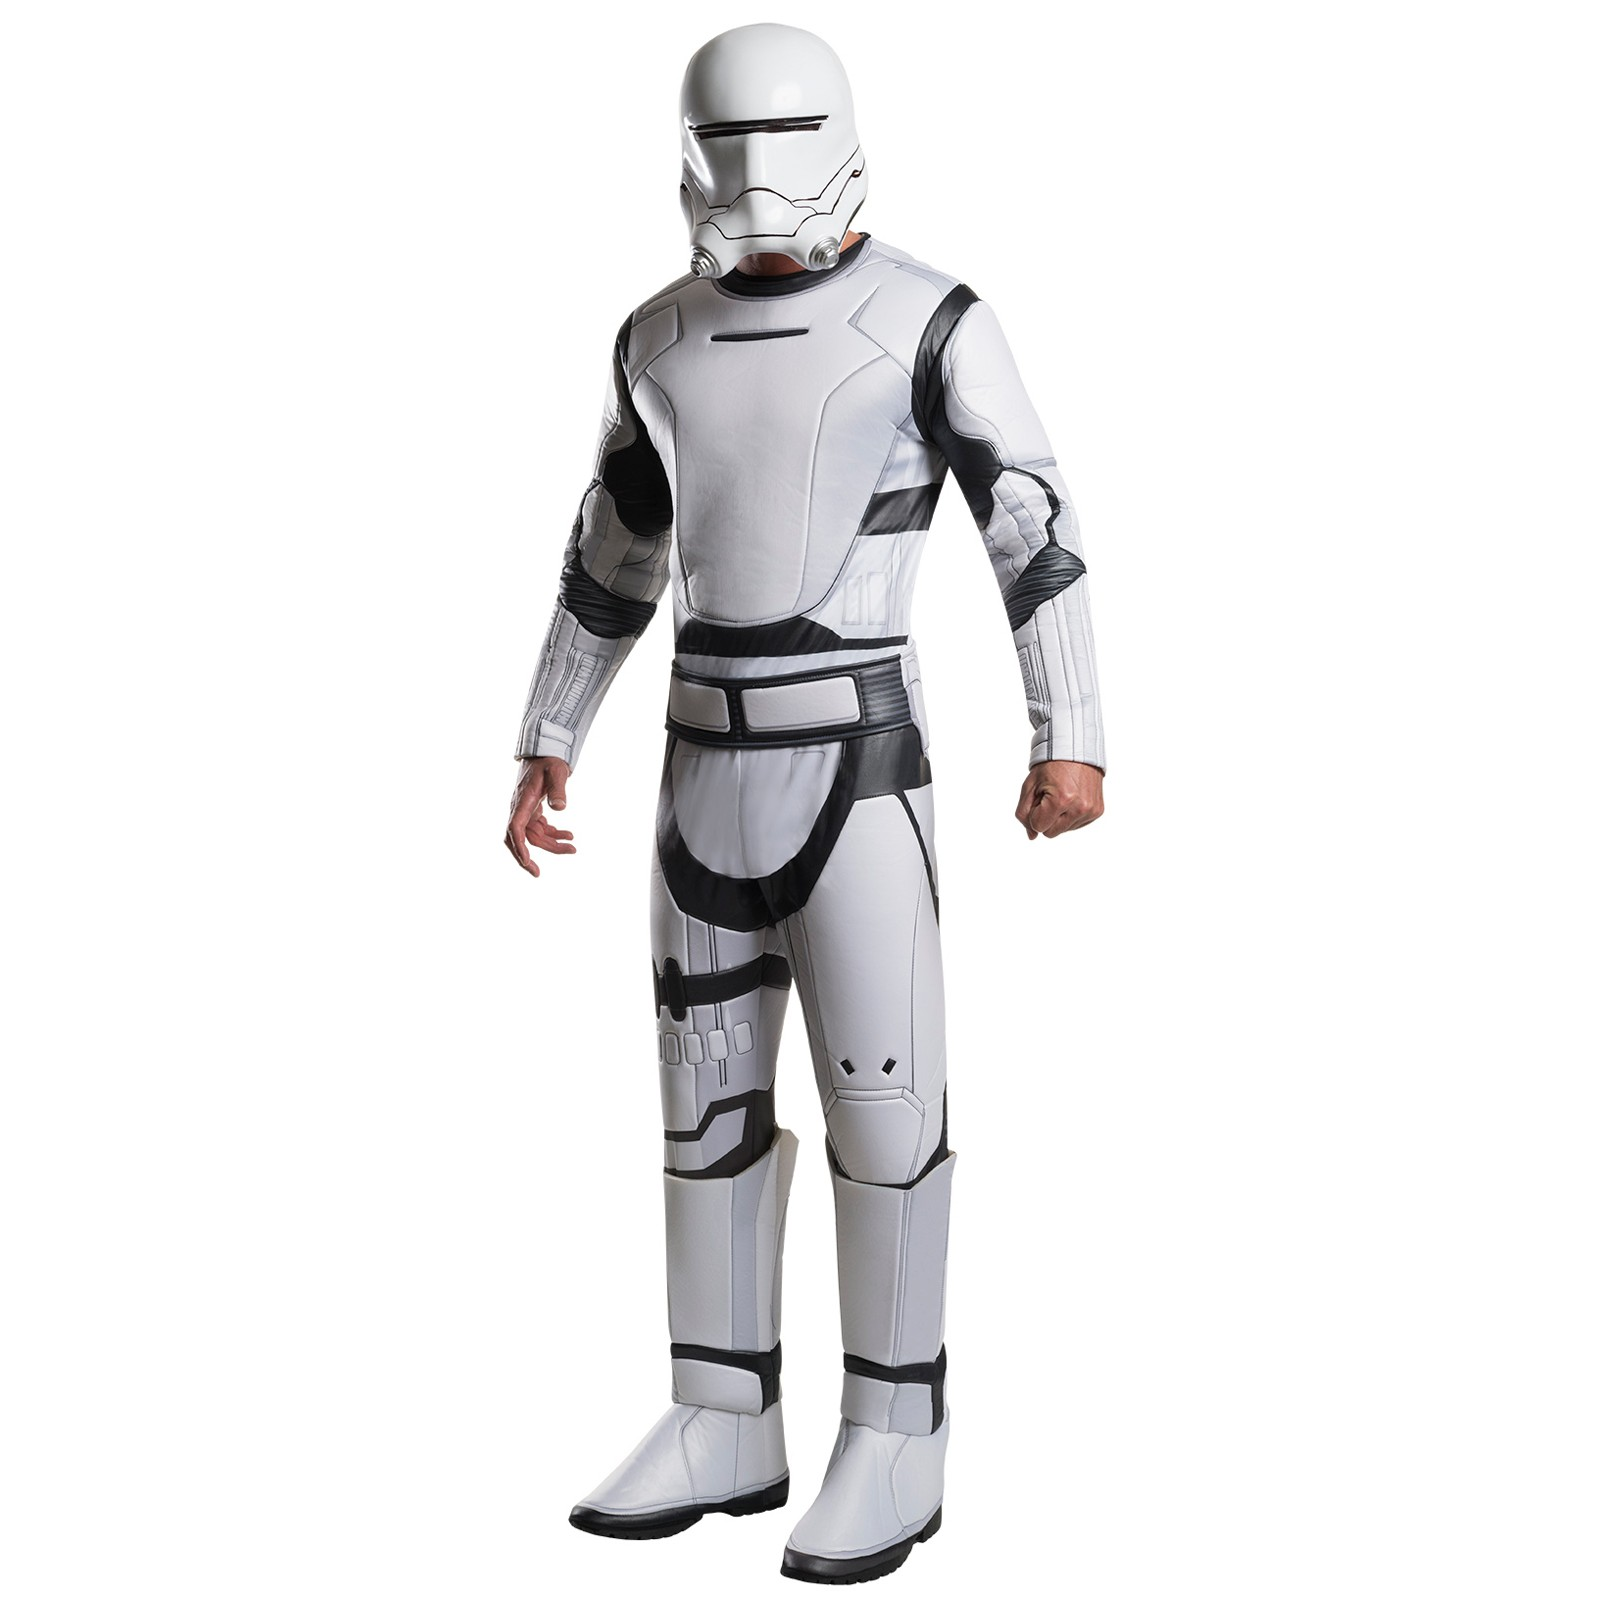 Star Wars: The Force Awakens - Flame Trooper Deluxe Adult Costume